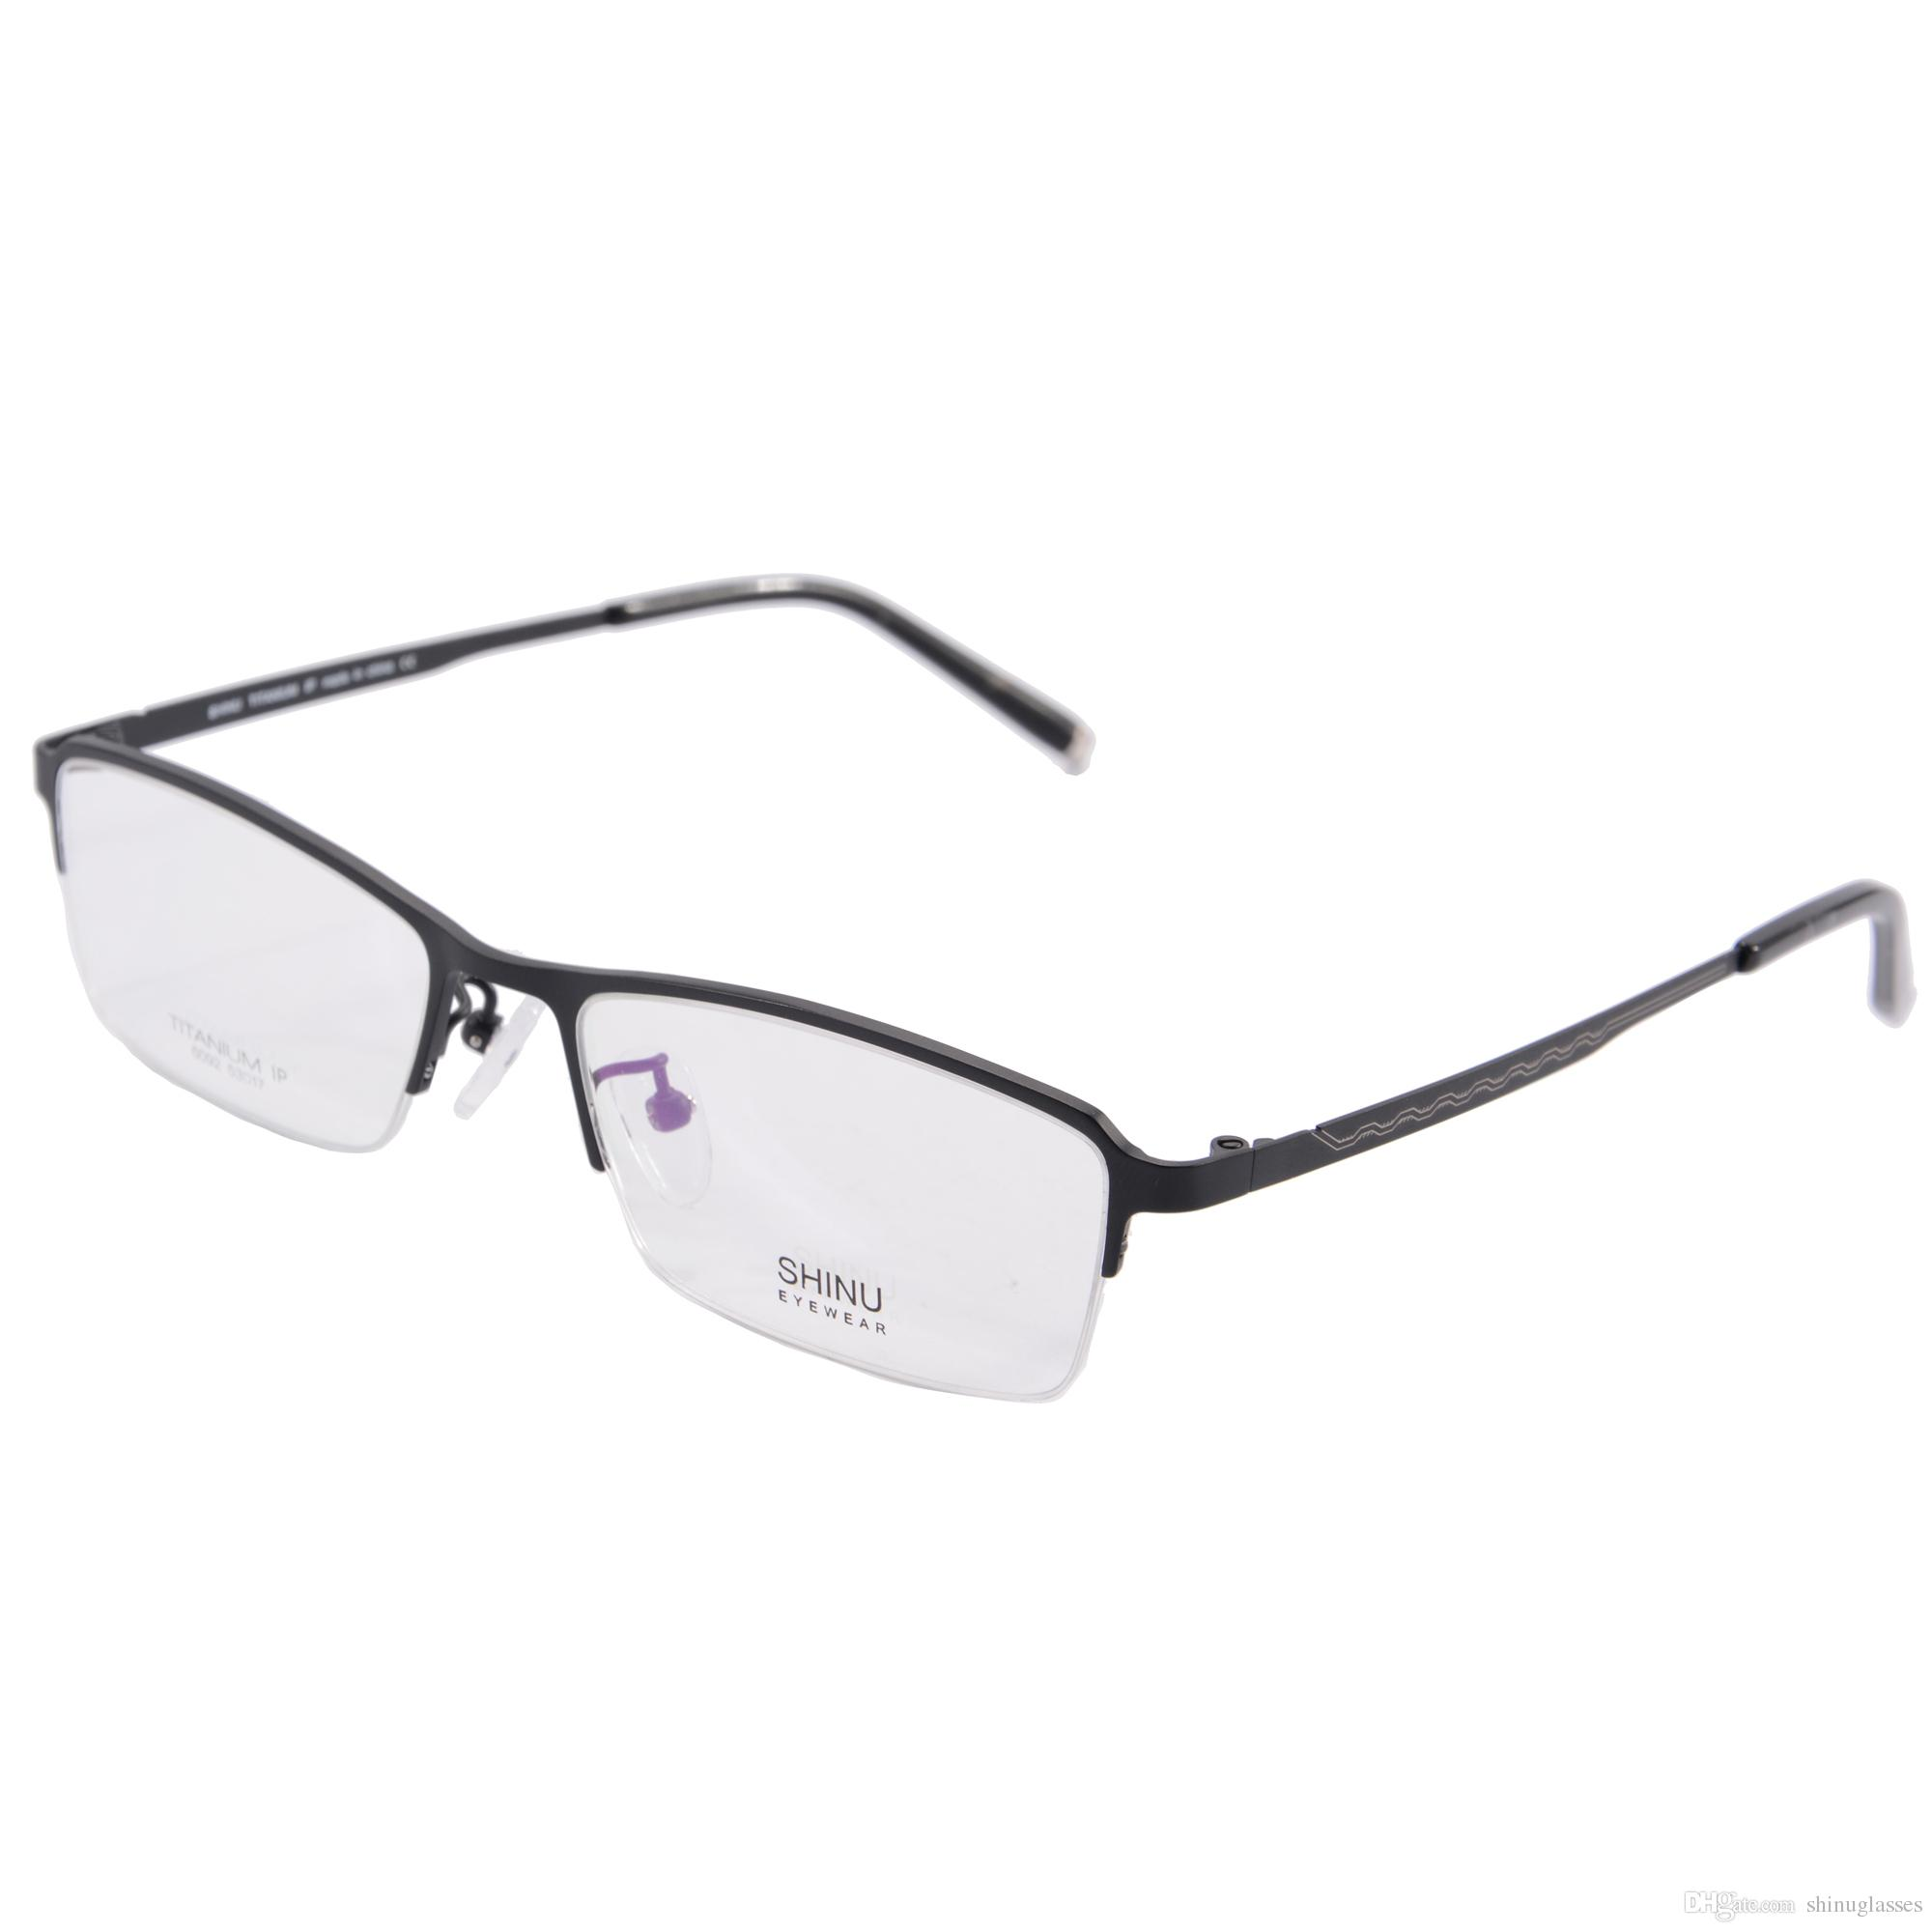 Eyeglass Frame Manufacturers United States : Shinu Titanium Glasses Frame Optical Prescription ...